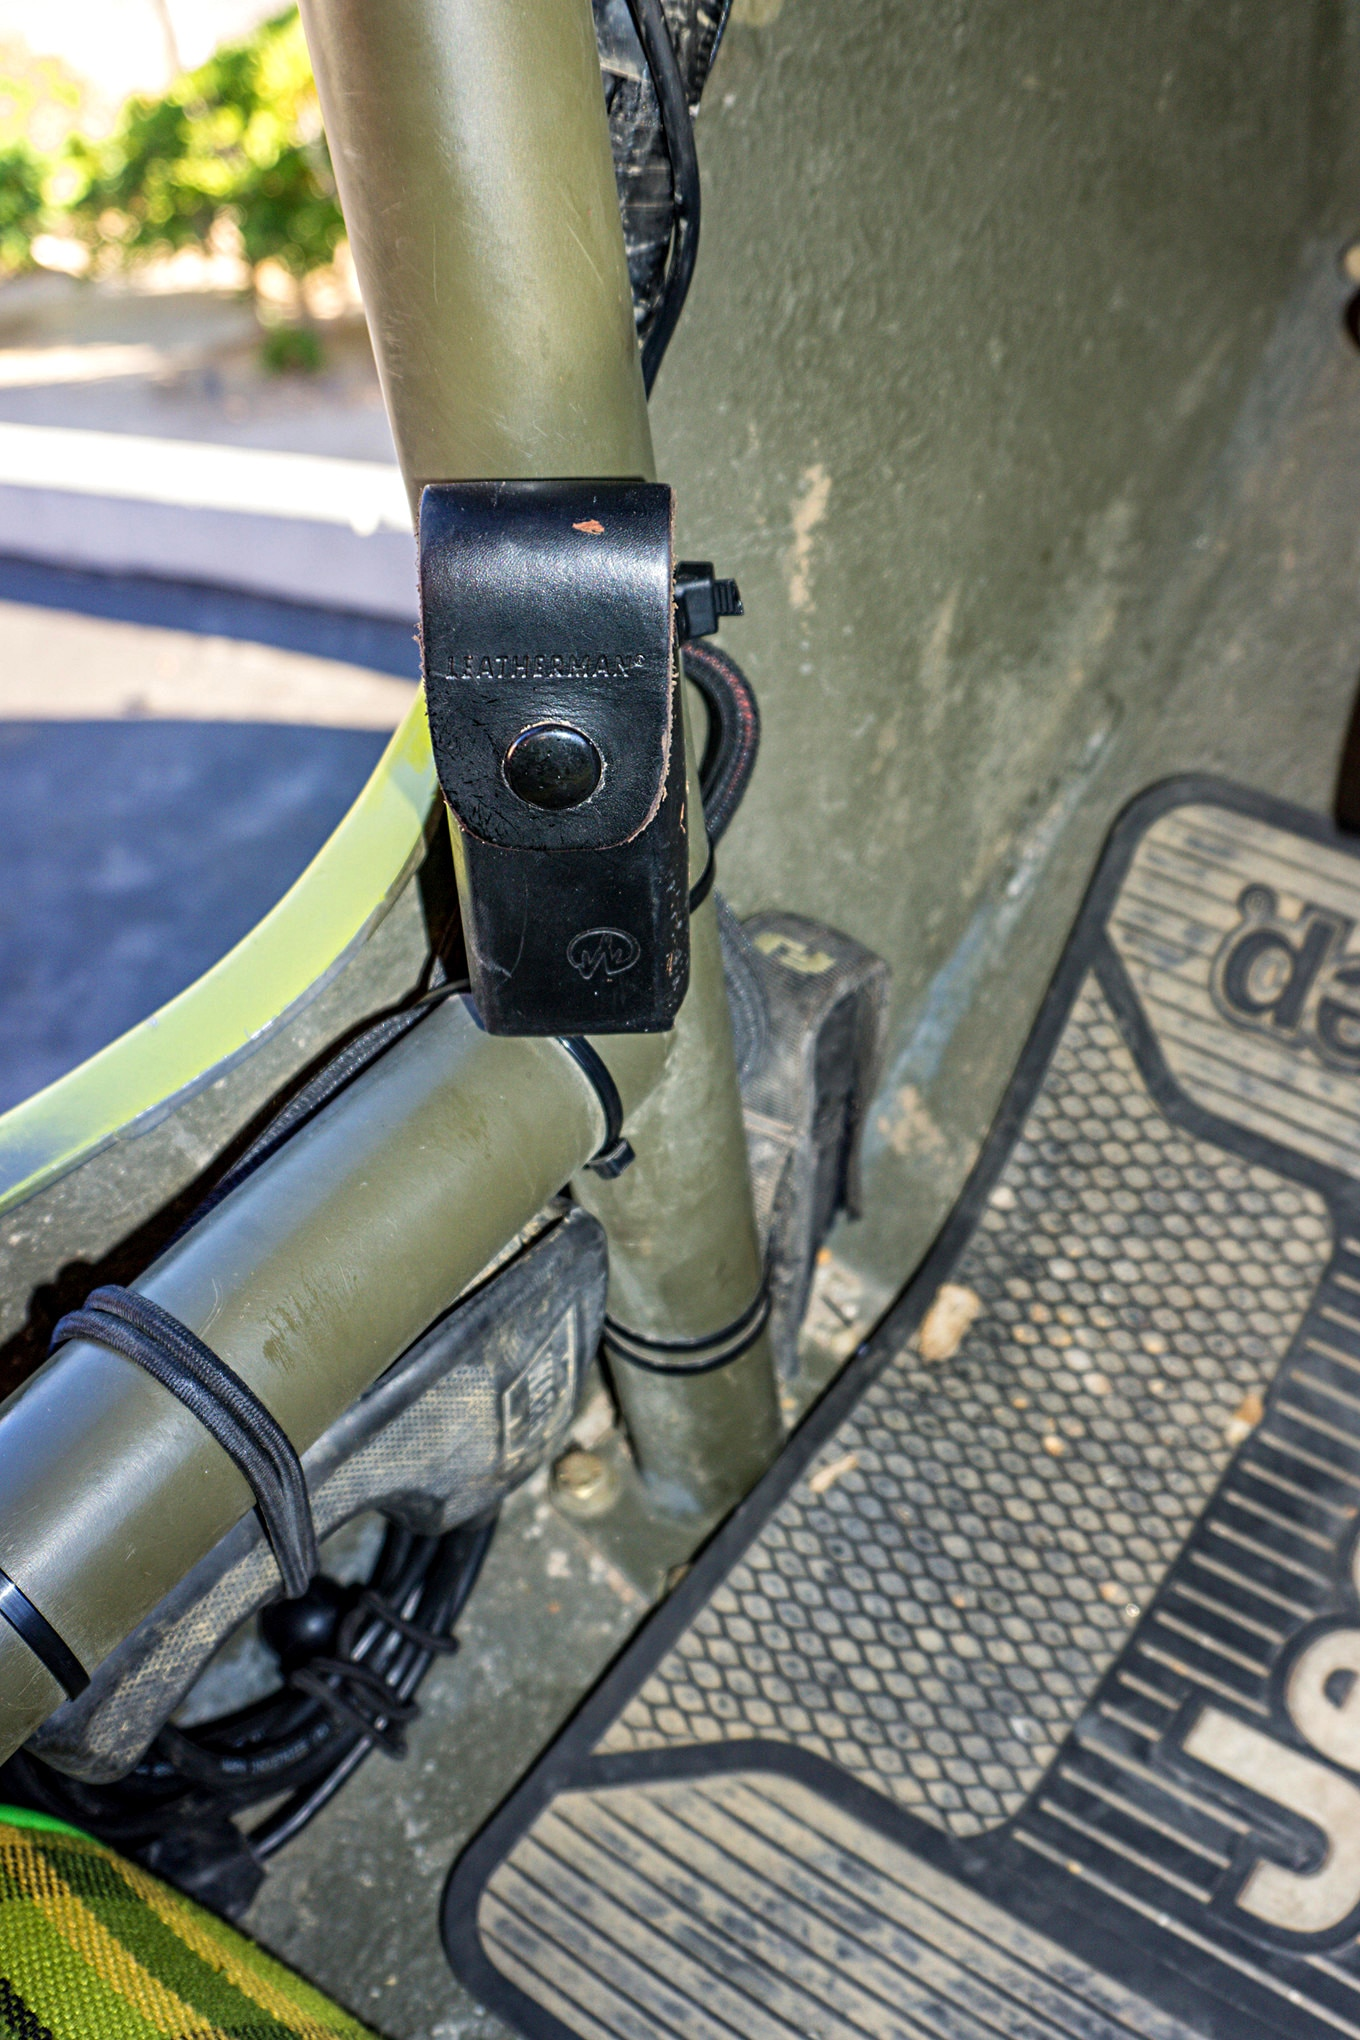 Flashlights and multitools are two of the items we use most often on the trail. Williams keeps them easily accessible by zip-tying the cases for these items to his rollcage. He also bungees the controller for his Warn winch in the same location, where it is easy to reach but out of the way.